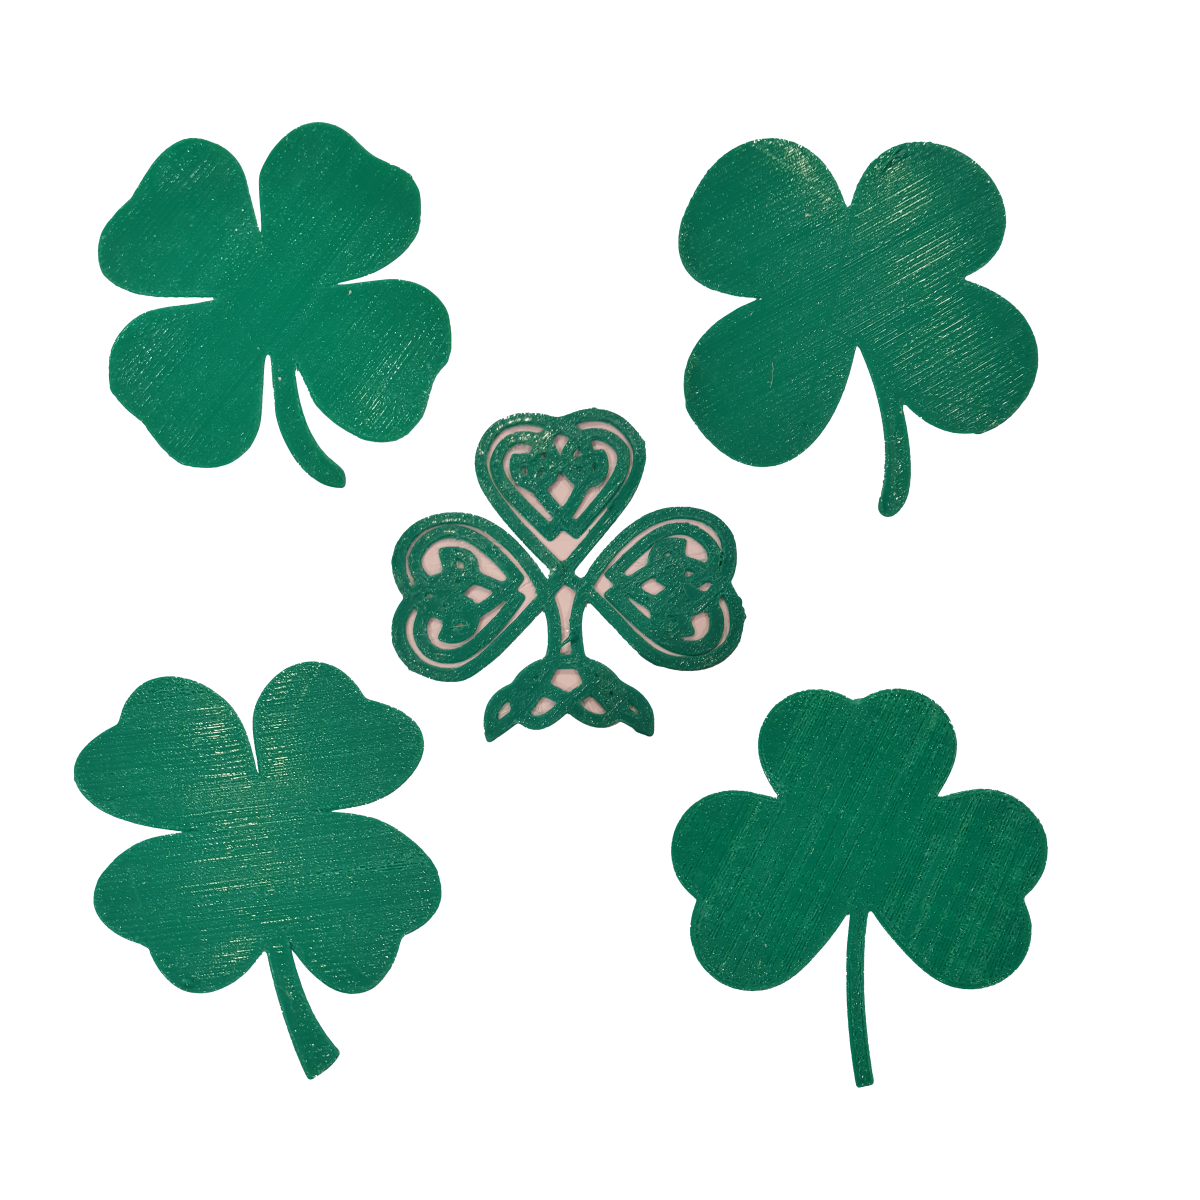 Download Free 3d Printer Designs Shamrock Or 4 Leaf Clover Cults